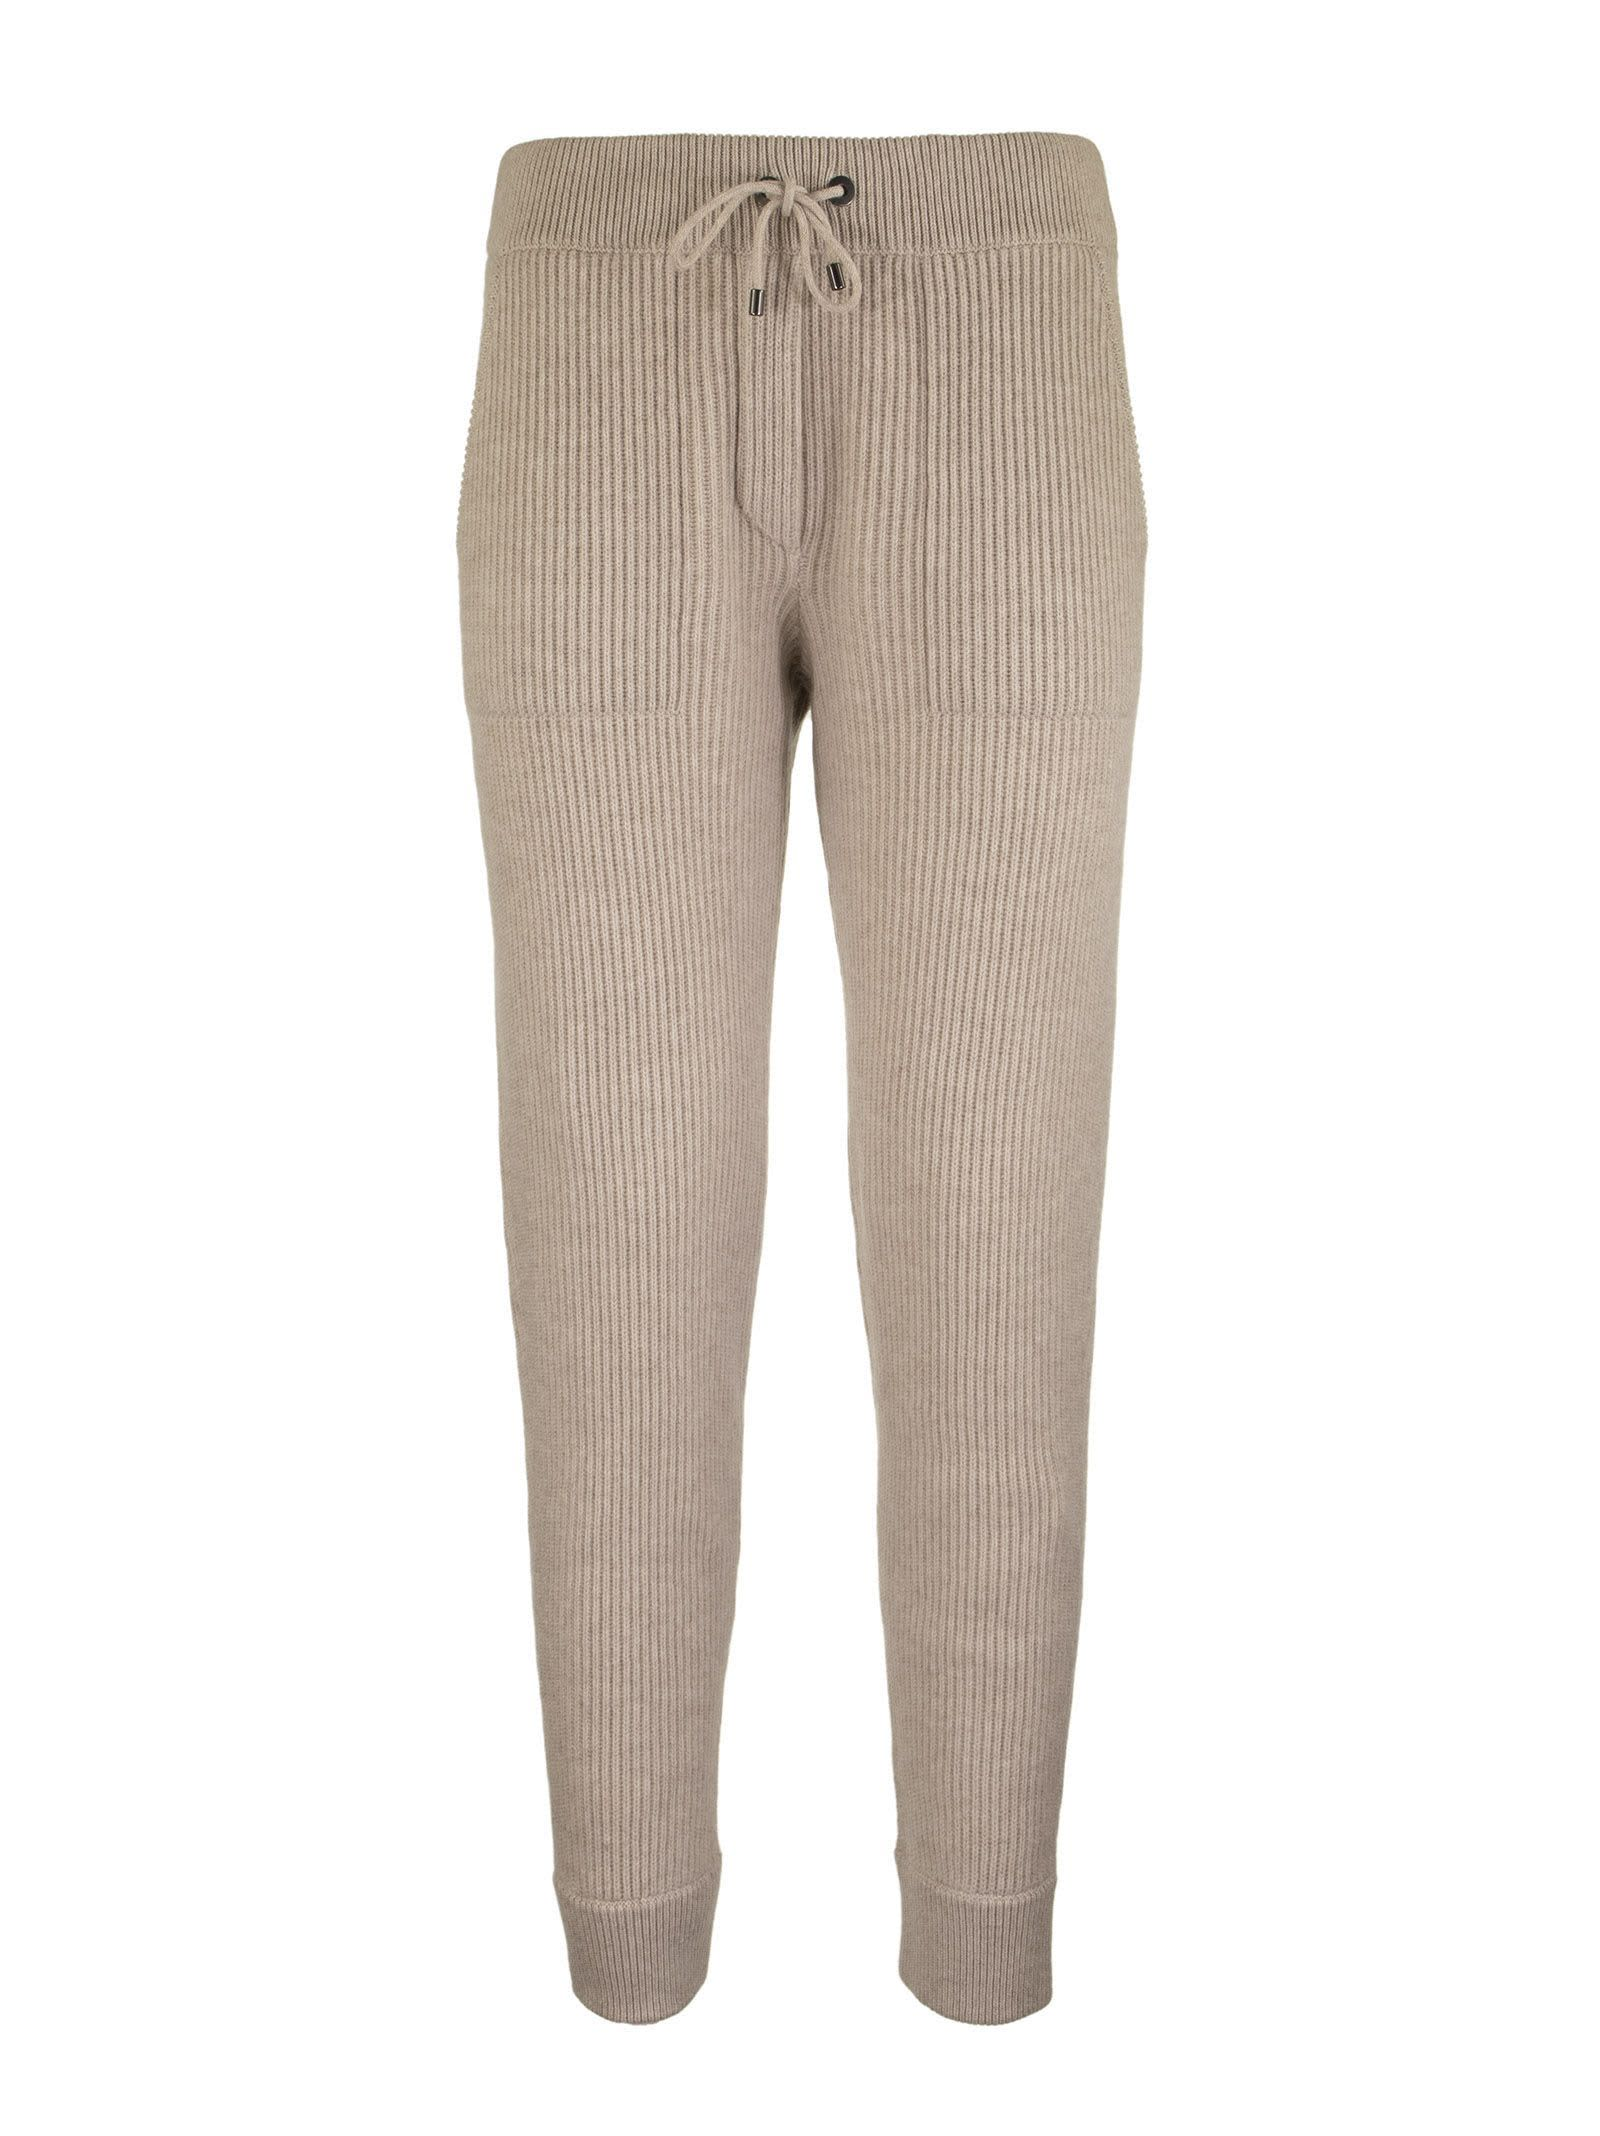 Brunello Cucinelli RIBBED CASHMERE SWEATPANTS